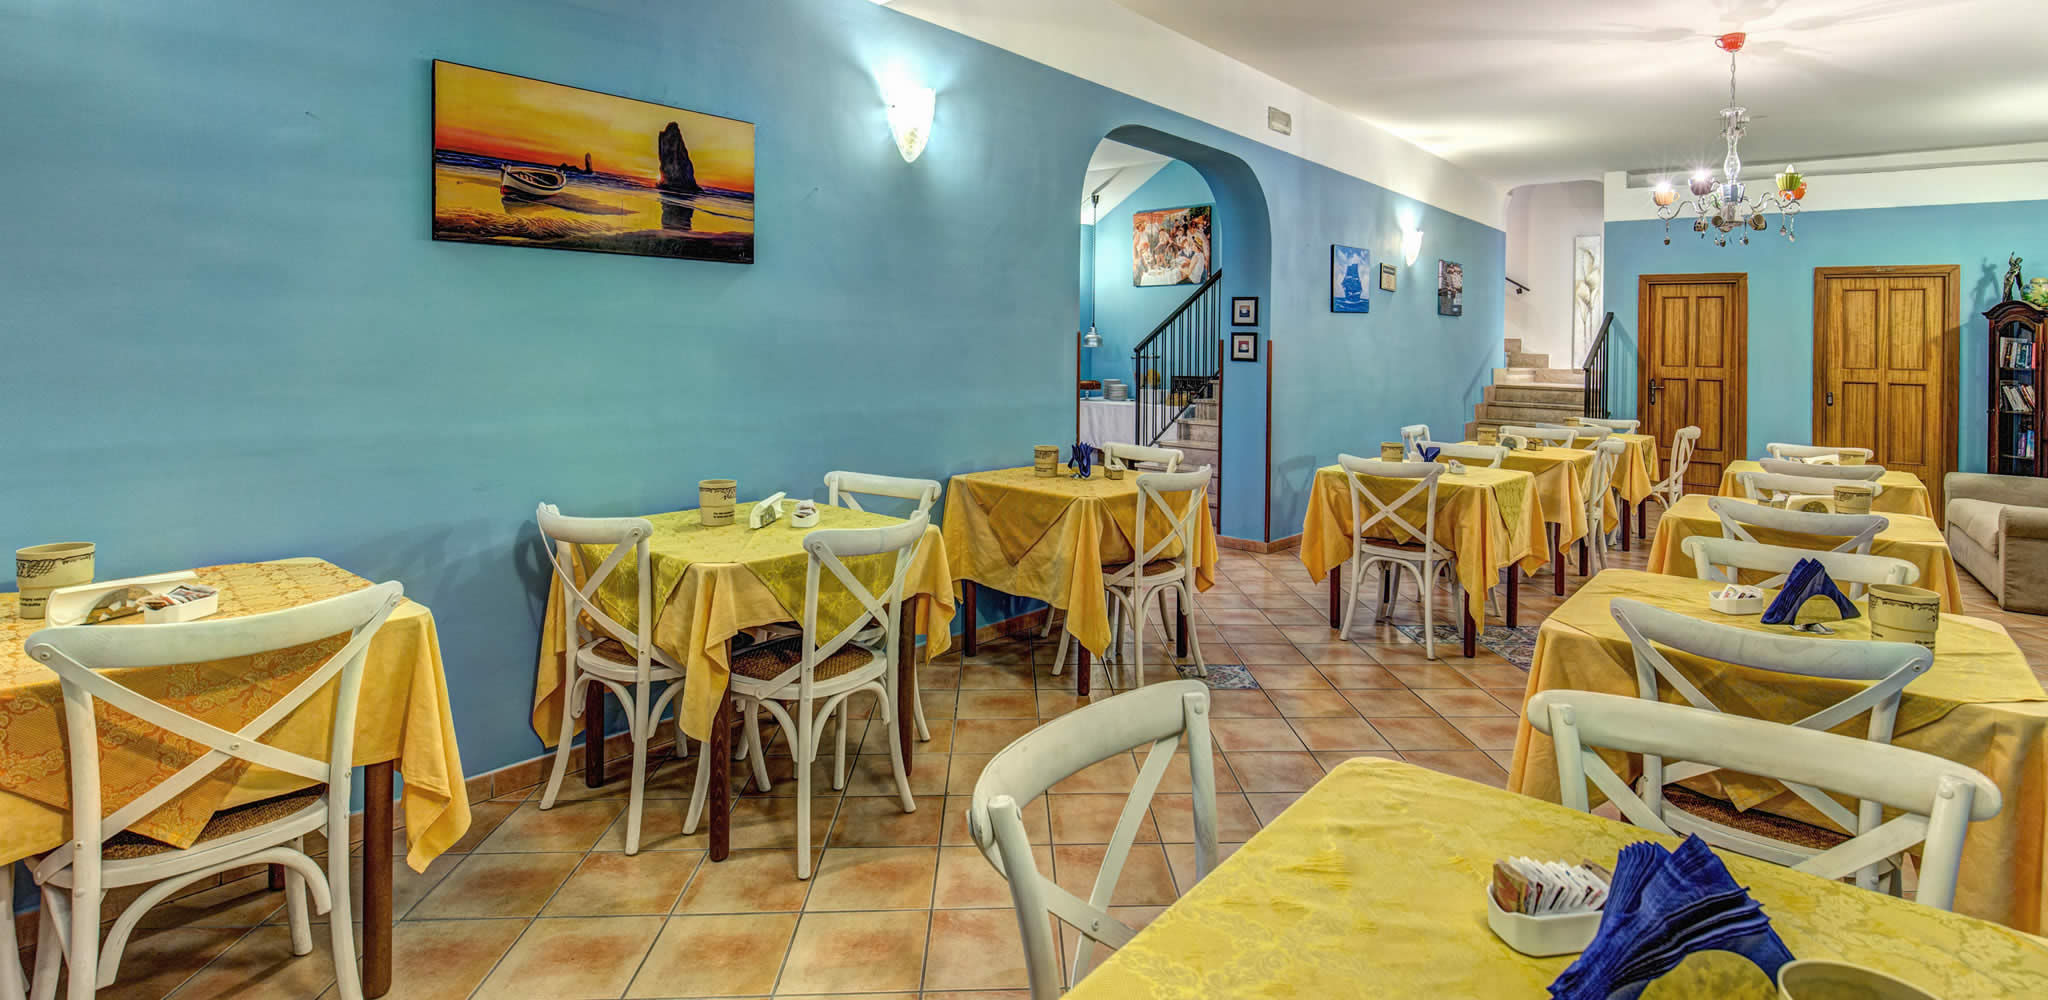 Hotel Nice Sorrento Official Site Best Rates Guaranteed